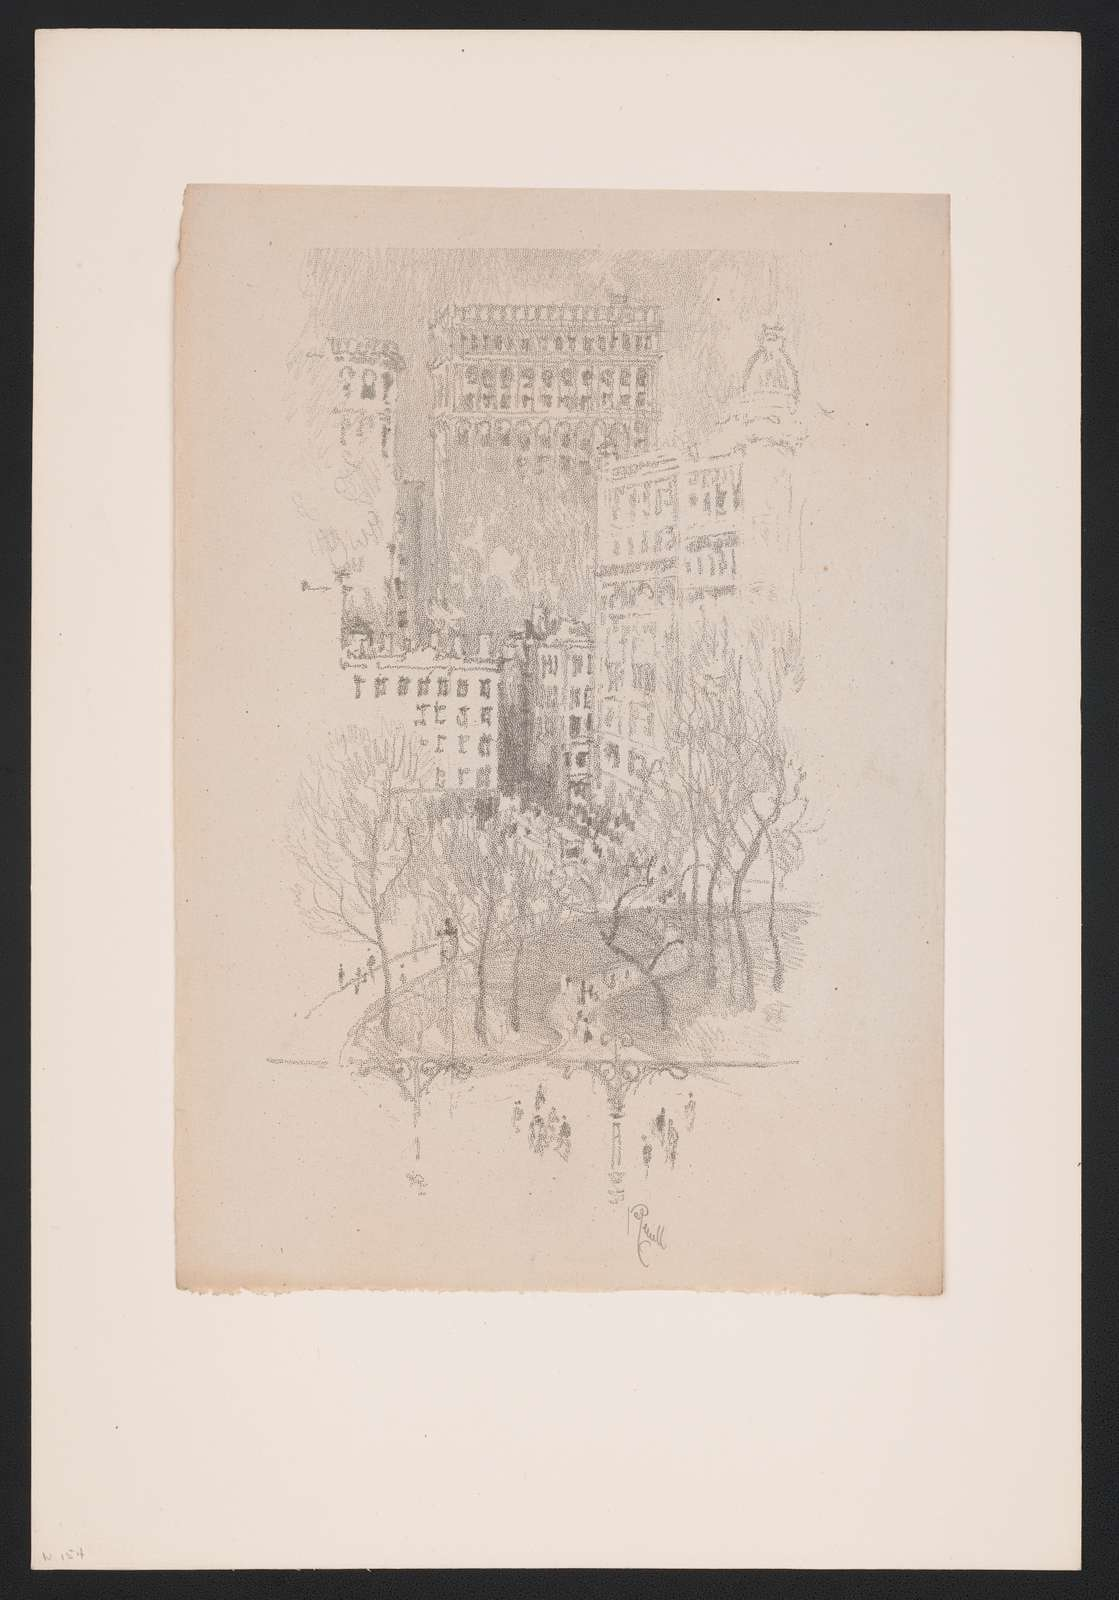 Lithographs of New York in 1904 drawn by Joseph Pennell. No. 10, Union Square J. Pennell